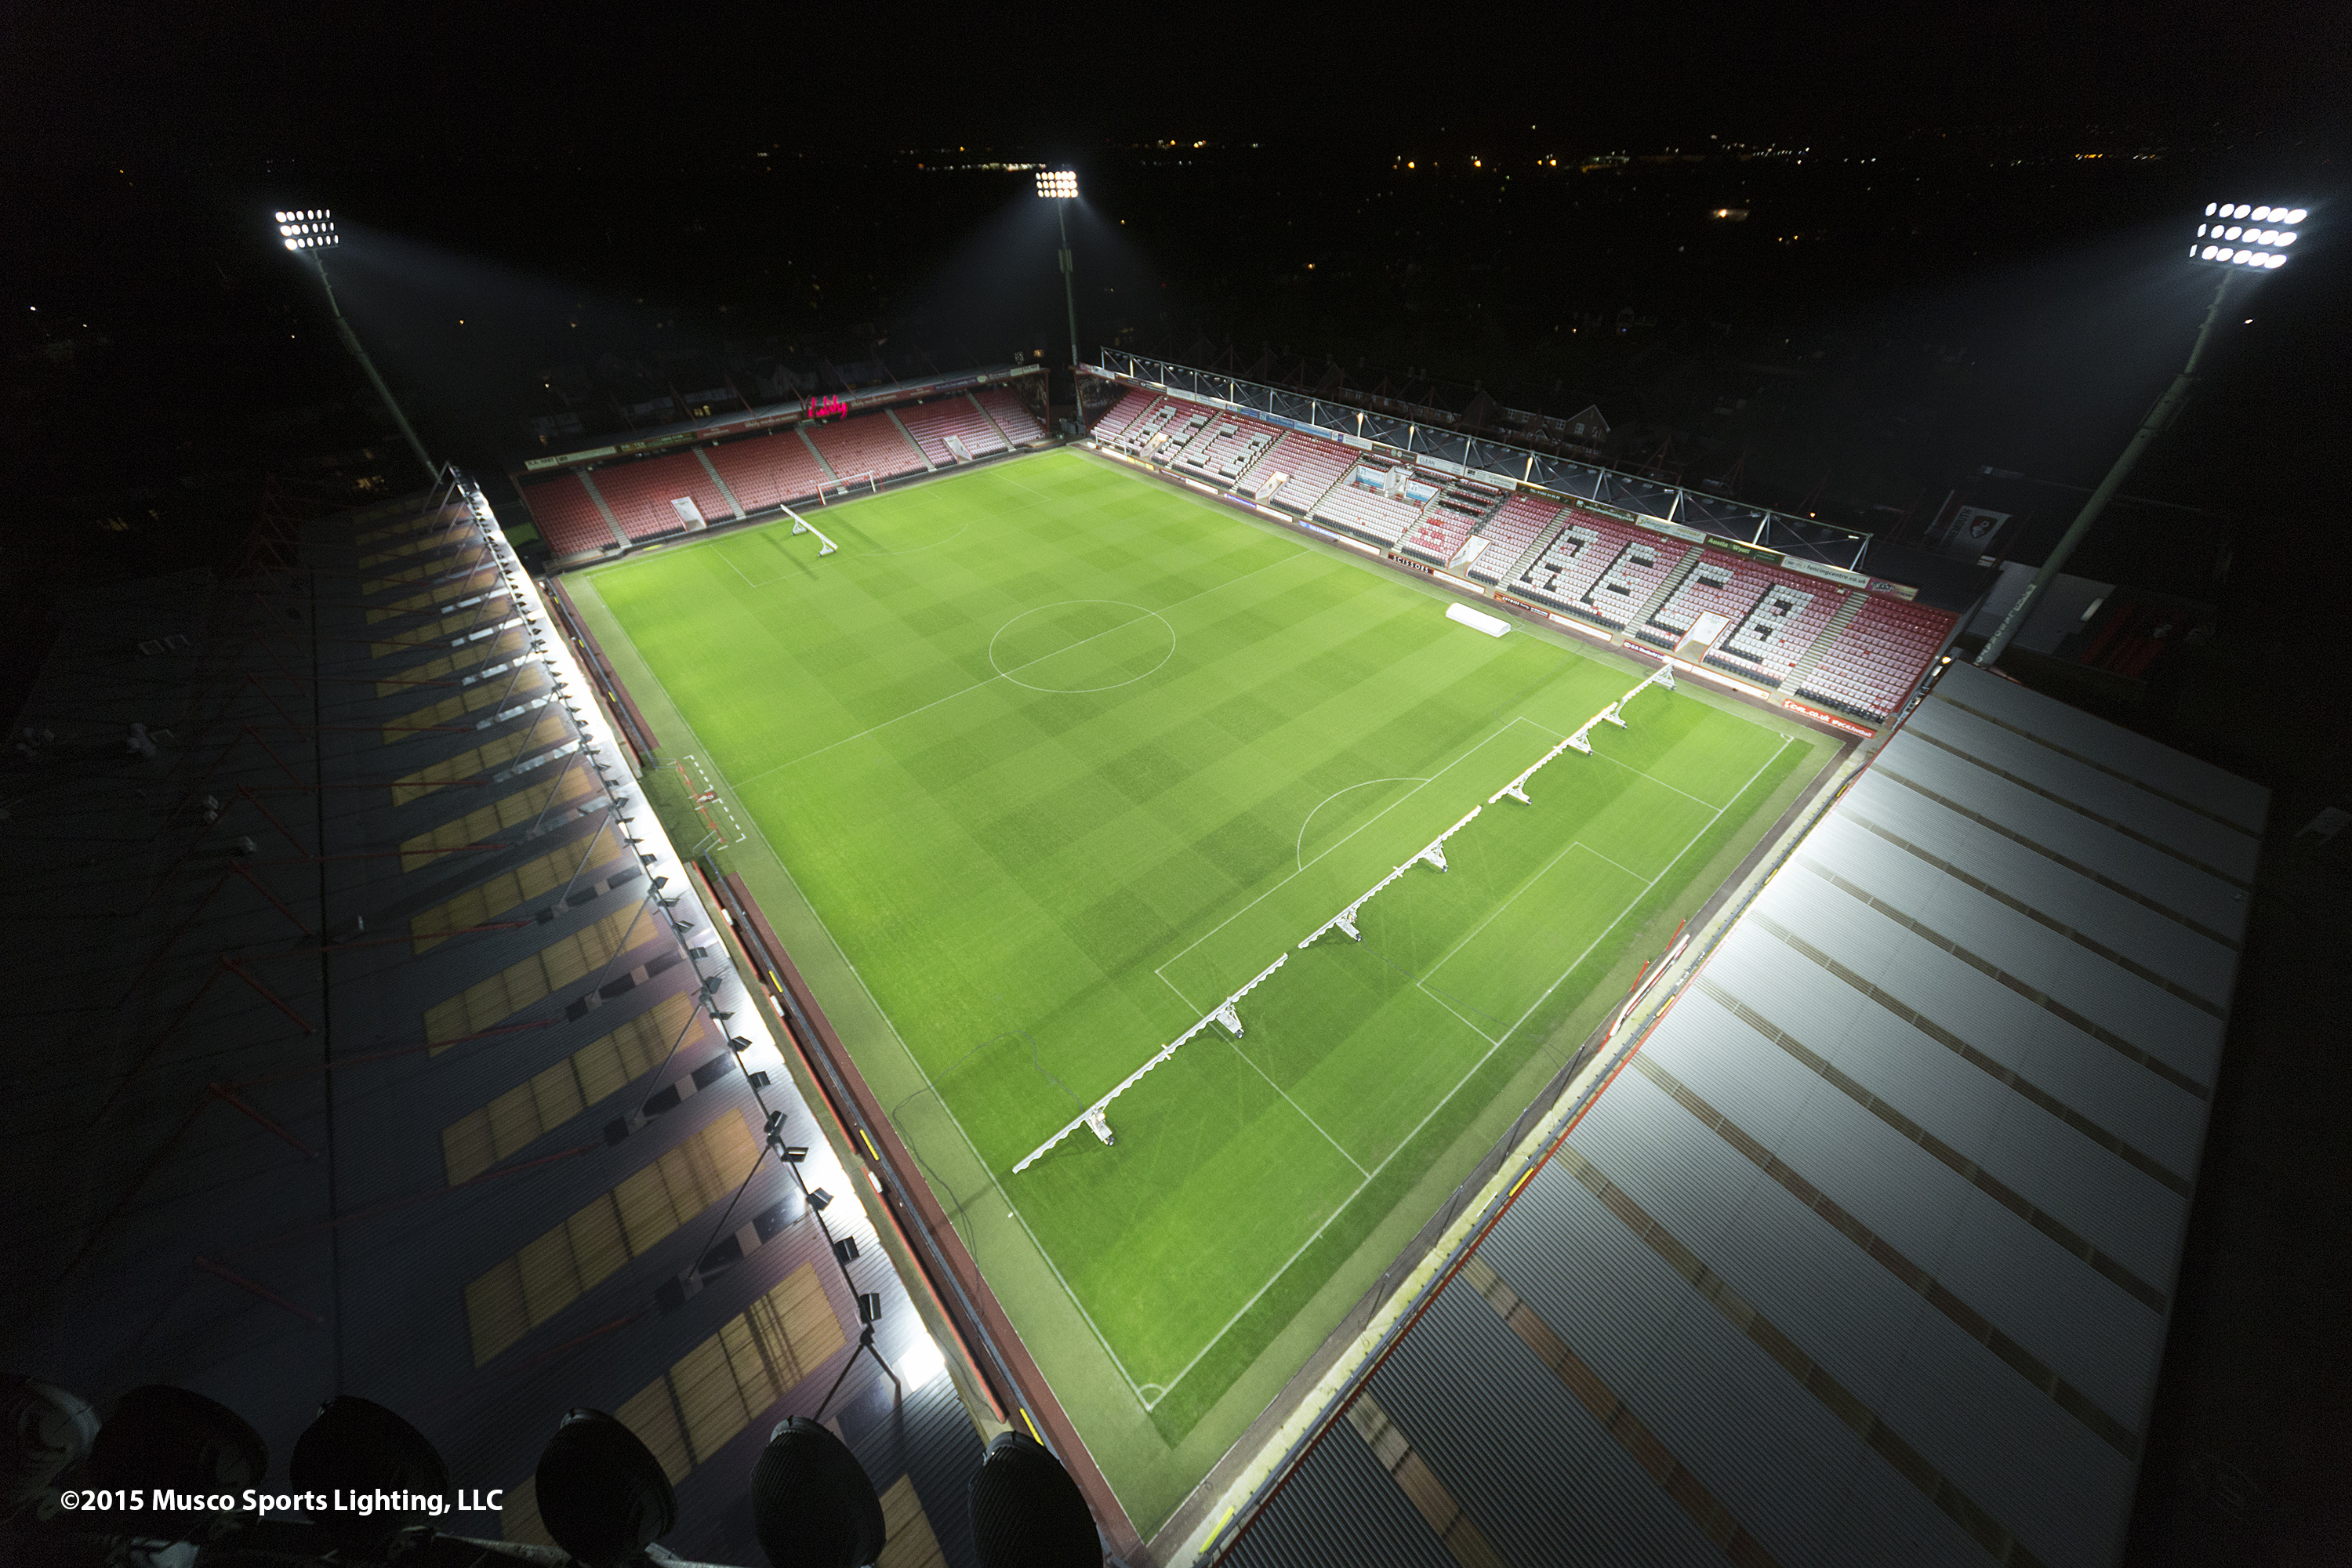 premier led lighting solutions. afc bournemouth enters premier league in fashion | business wire led lighting solutions a